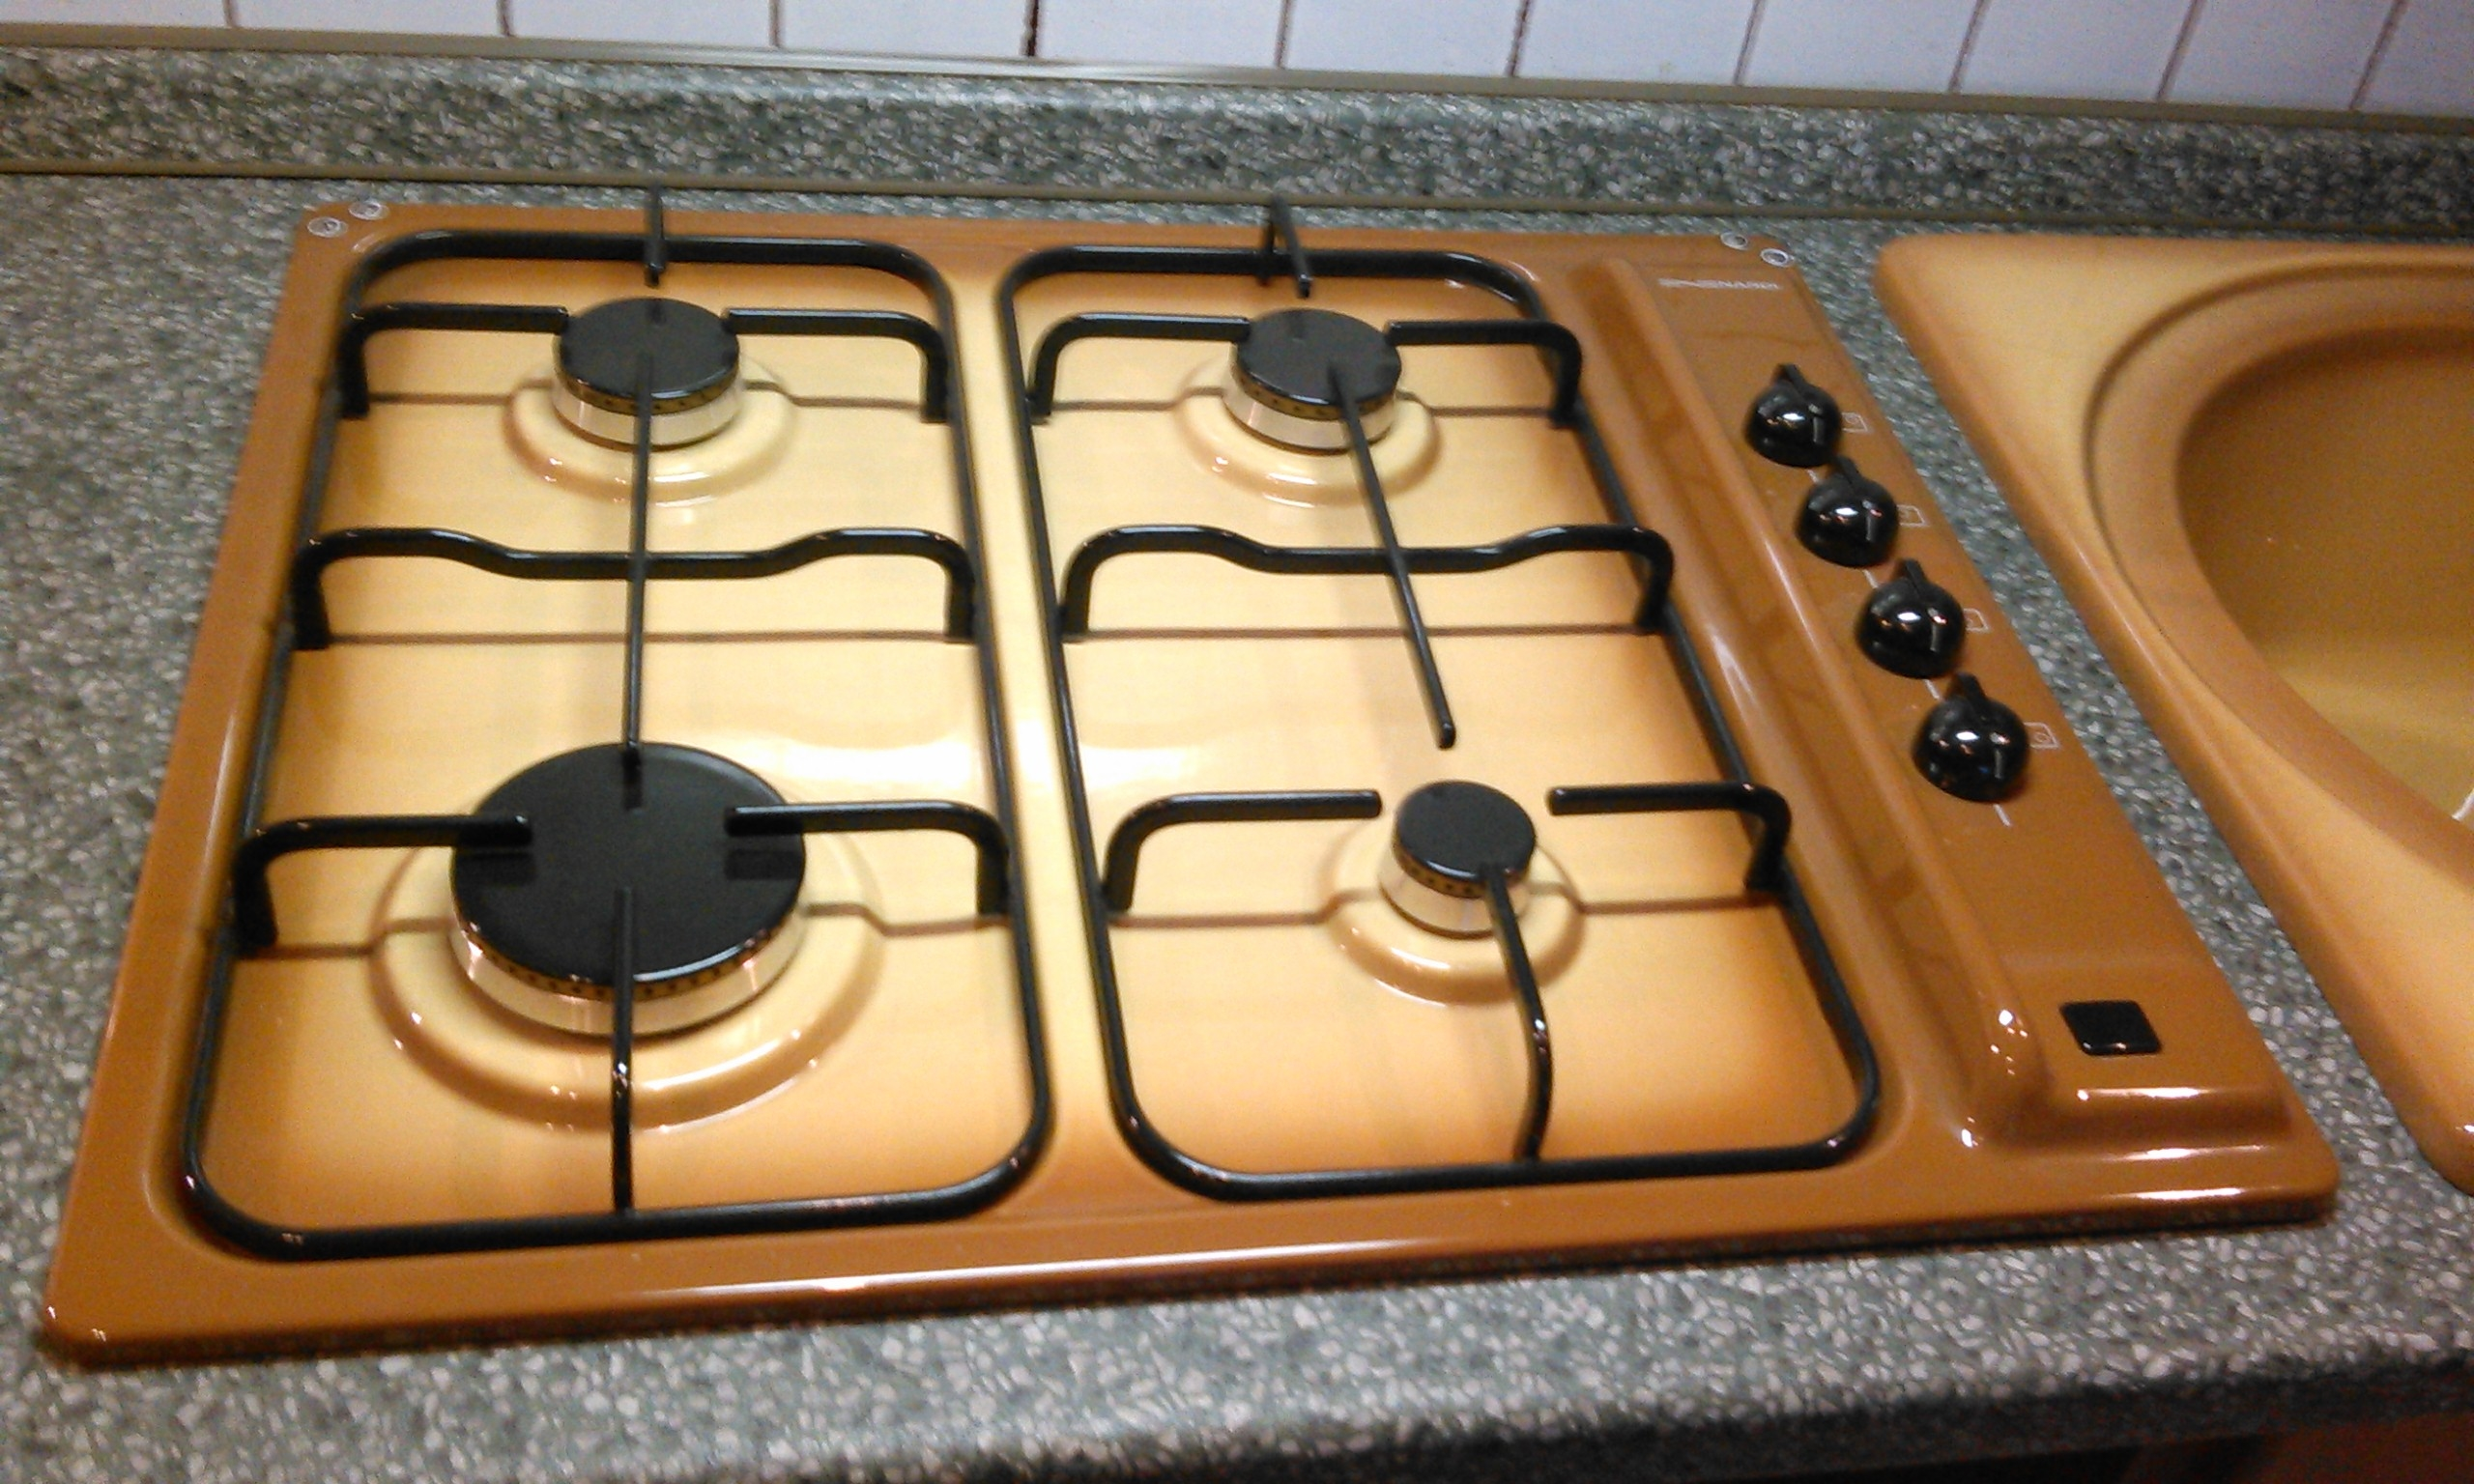 Beautiful Miscelatore Lavello Cucina Ideal Standard Images - Orna ...